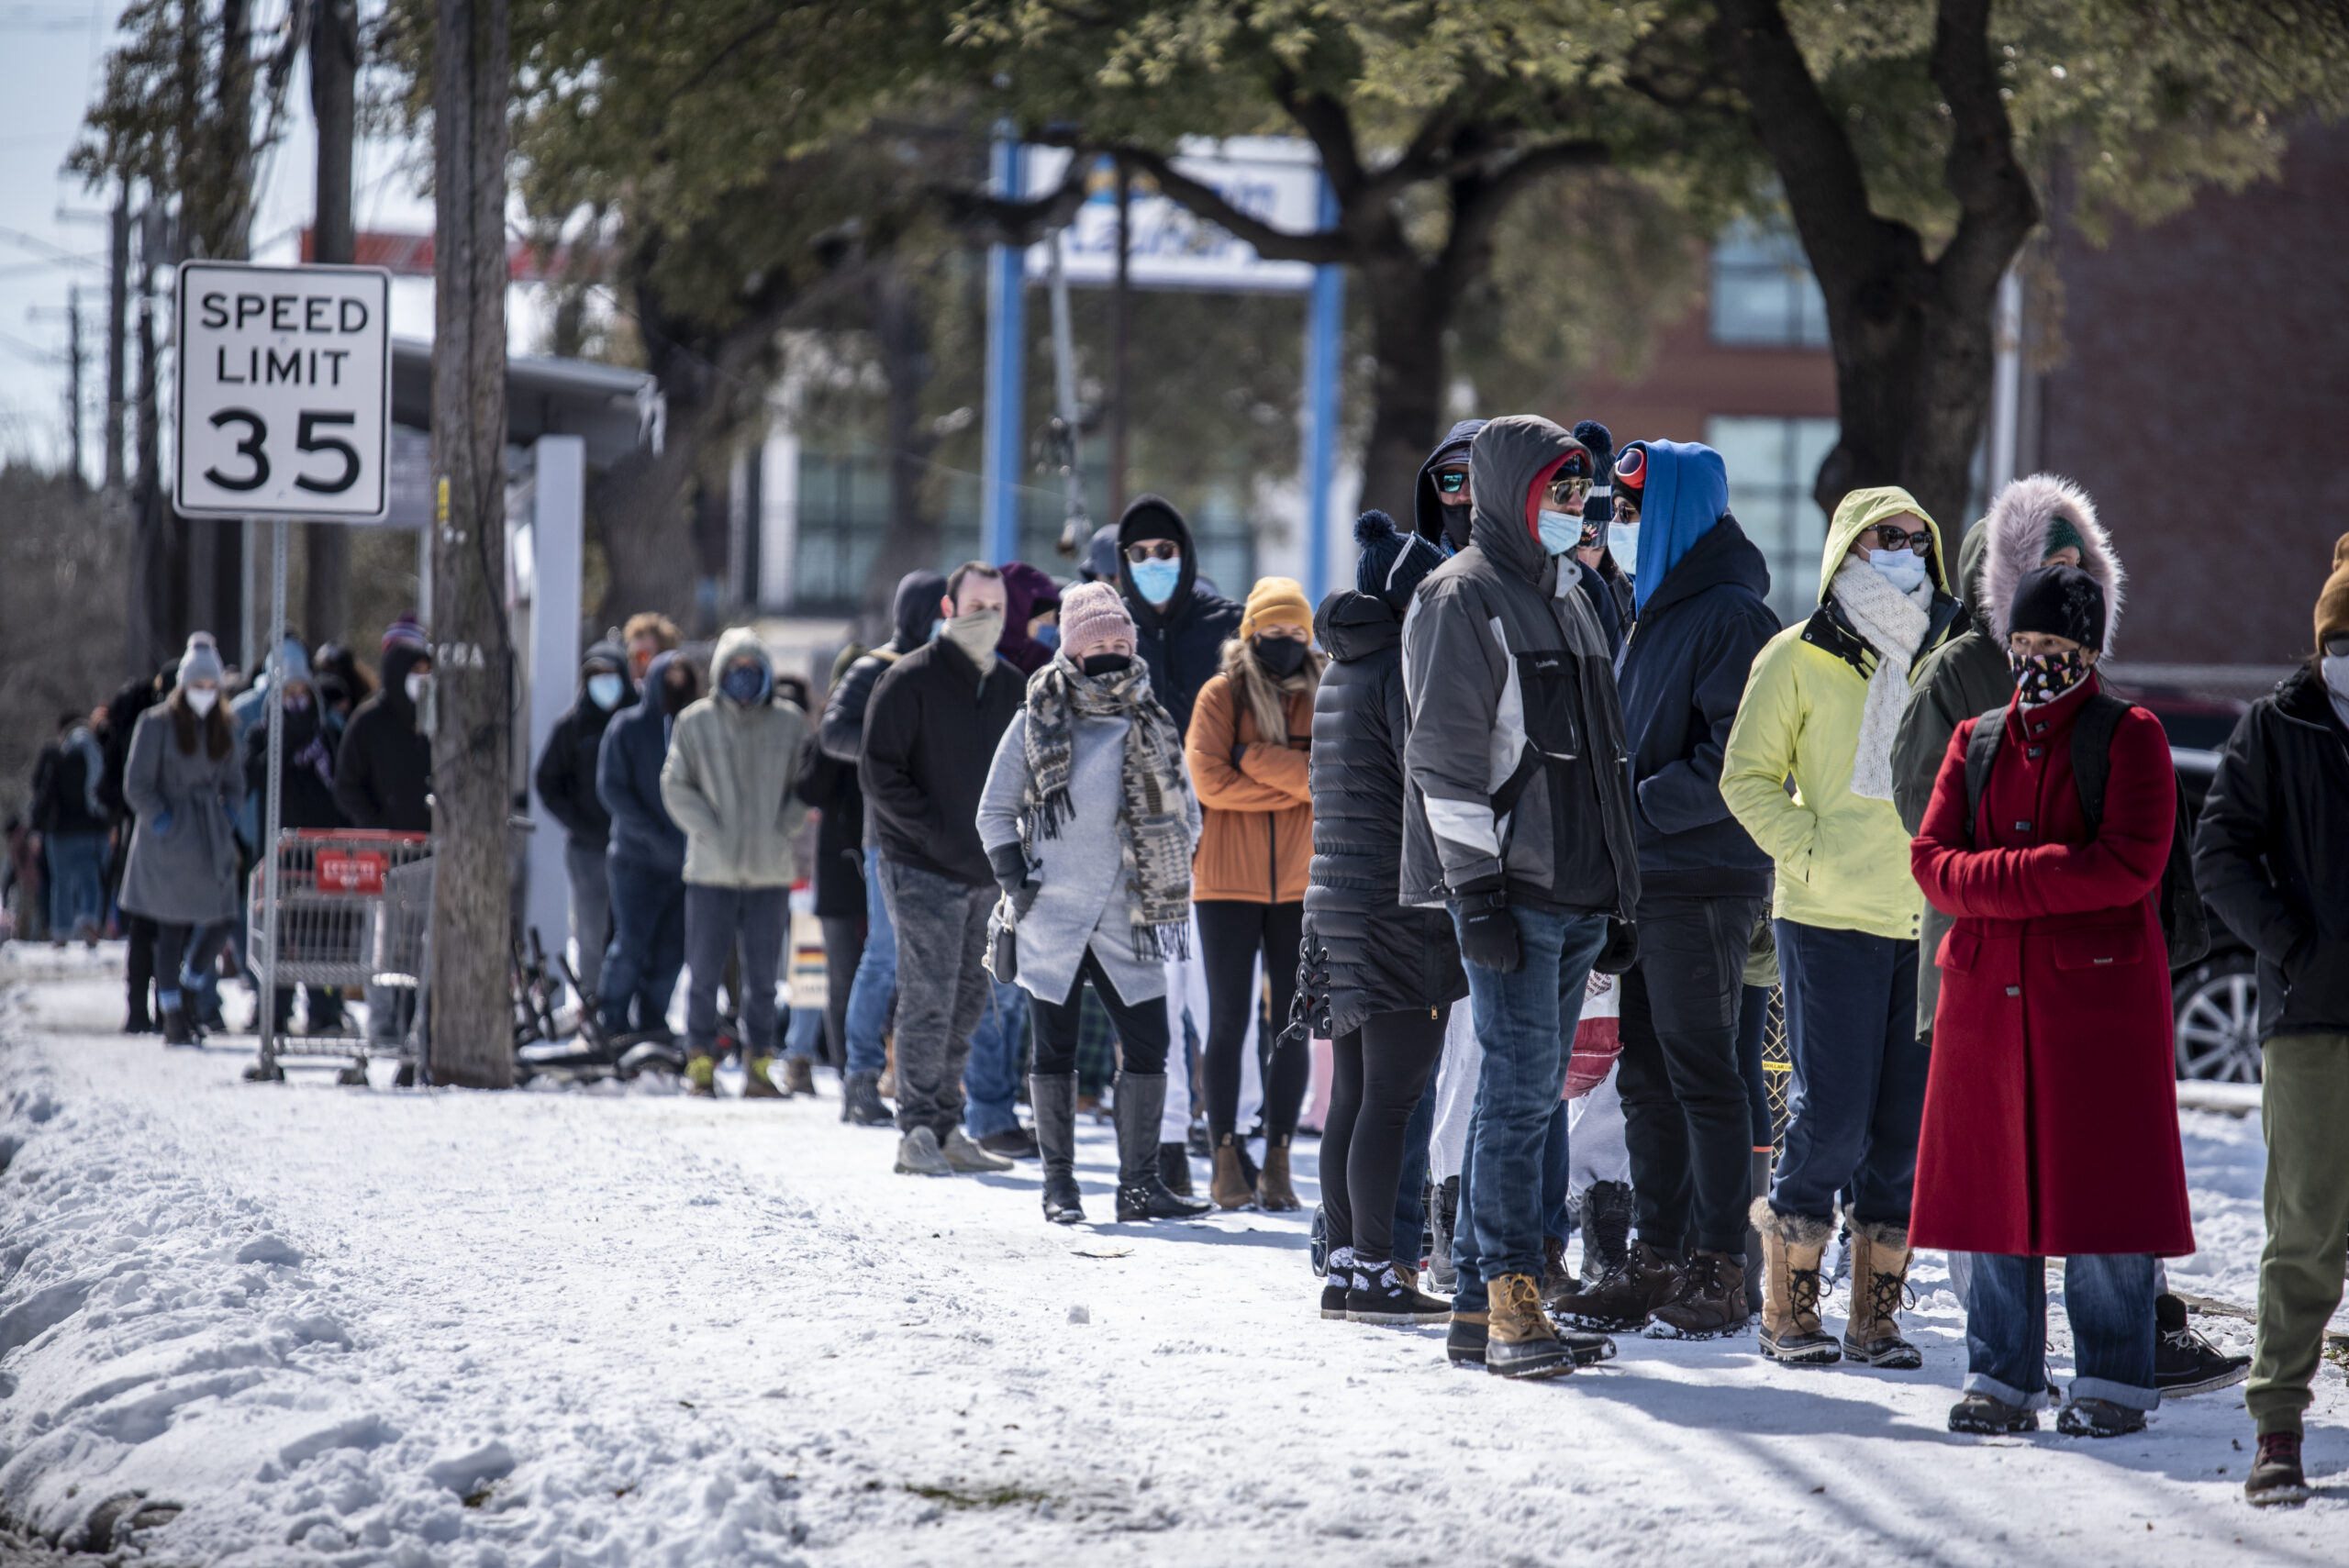 People wait in line at a grocery store in Austin, Texas on Tuesday, Feb. 16, 2021. Credit: Sergio Flores for The Washington Post via Getty Images